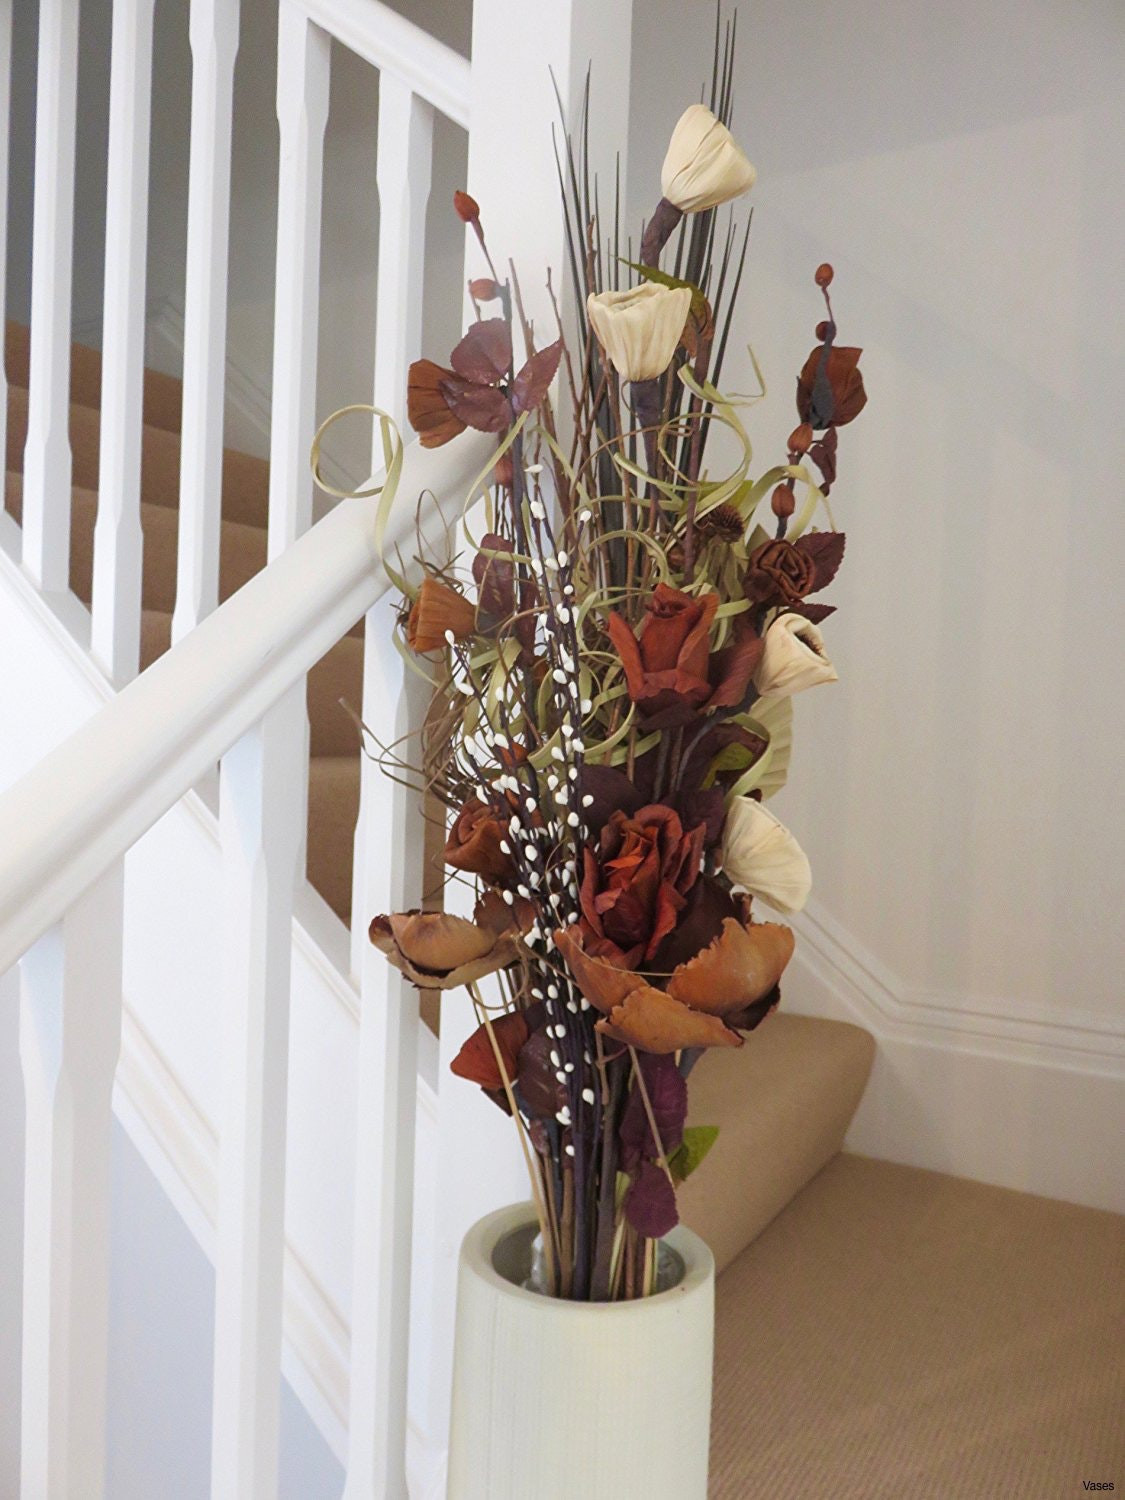 glass vases wholesale in los angeles of flower arrangements for buffet table floral arrangement inspiration intended for h vases artificial flower arrangements i 0d design dry flower design inspiration wall flower decor